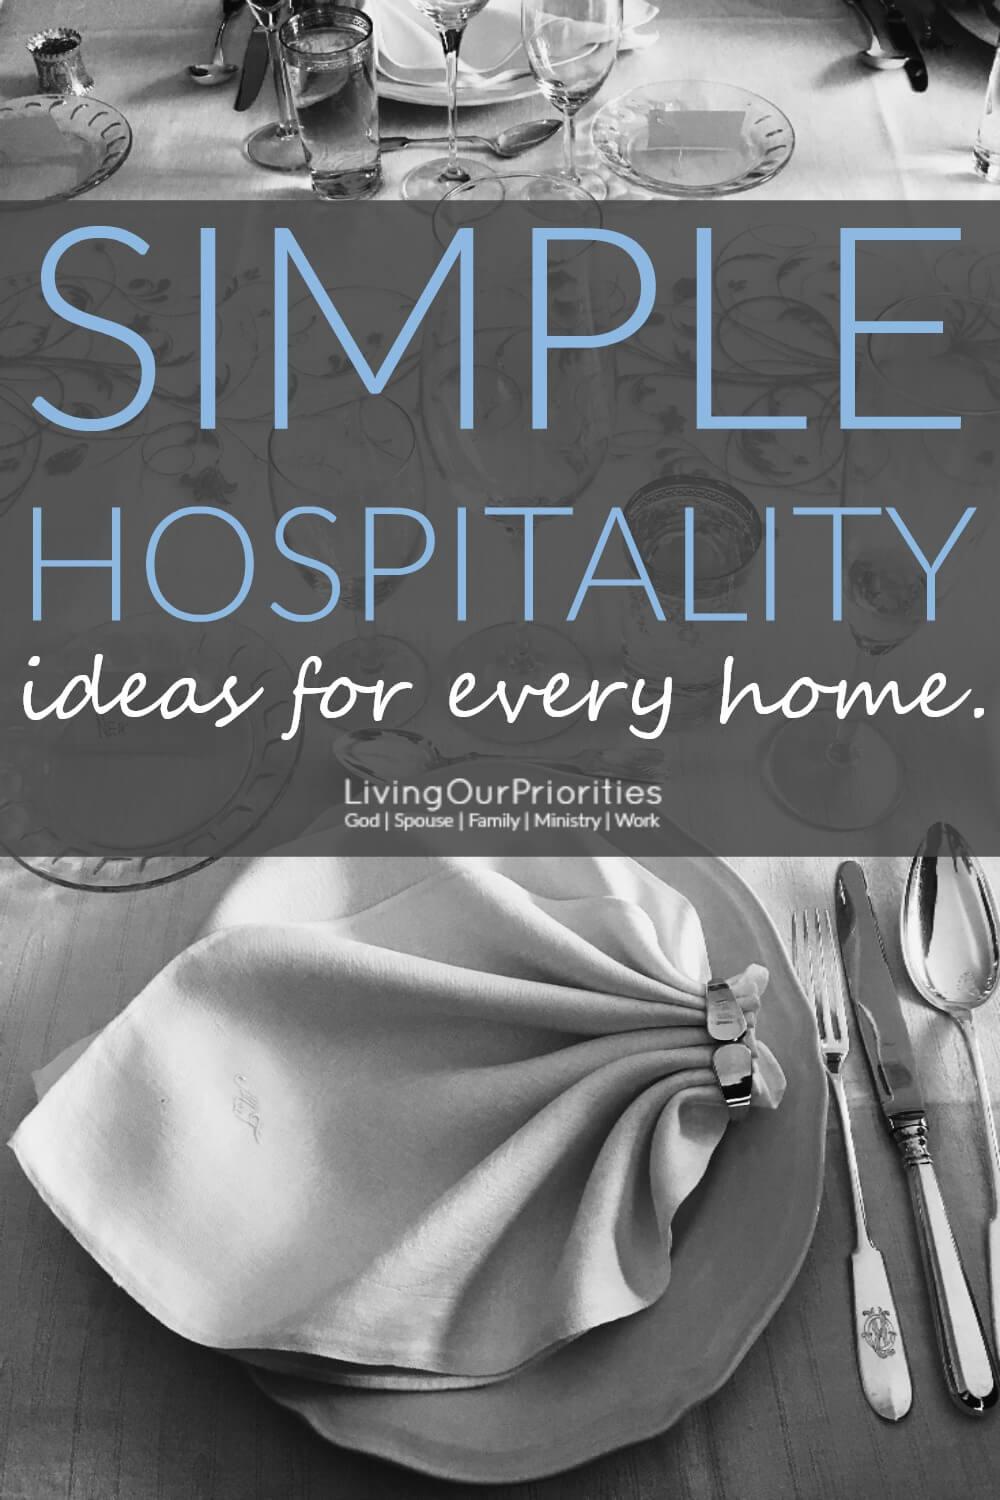 Hospitality is what we do believers in Christ! And it does not need to be complex. Read more to learn simple hospitality ideas for every home.